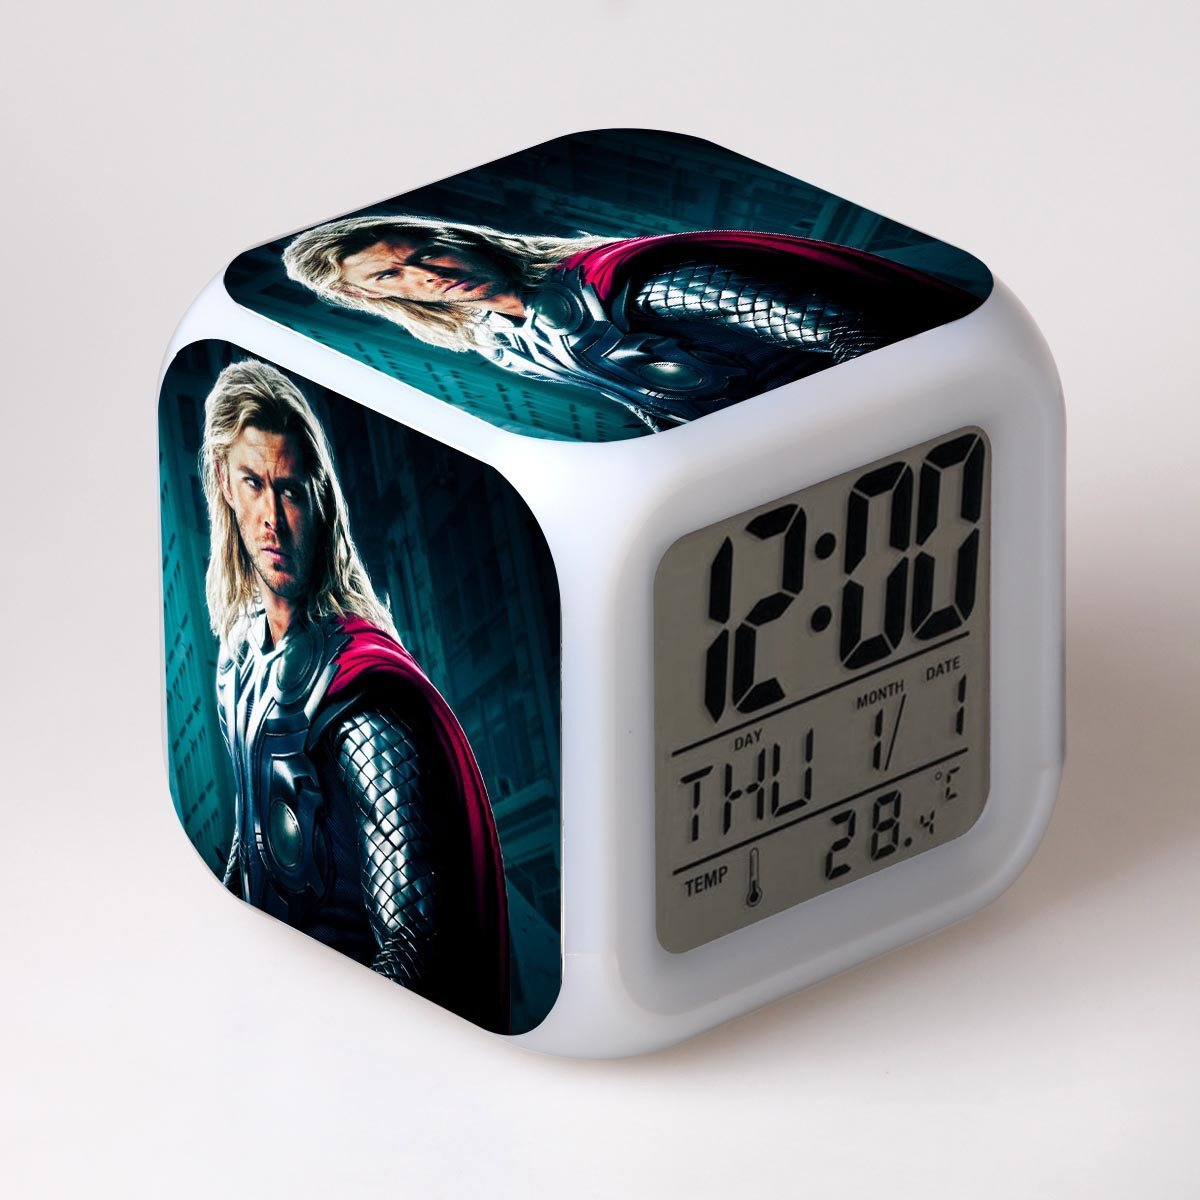 The Avengers Colorful Alarm clock